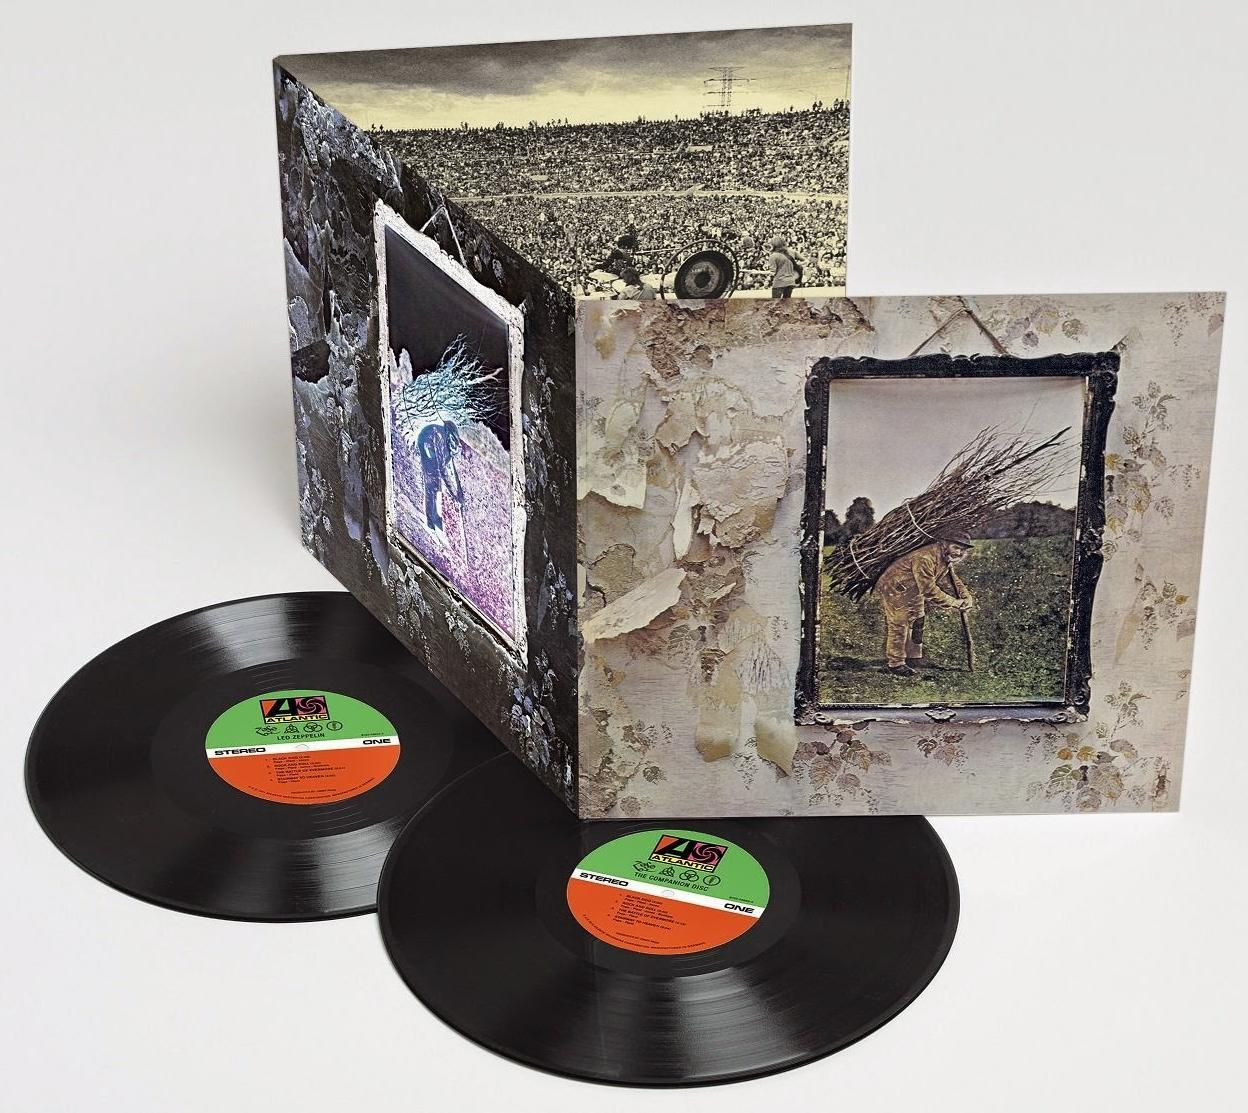 Led Zeppelin - Led Zeppelin IV [Deluxe Edition] (2014)